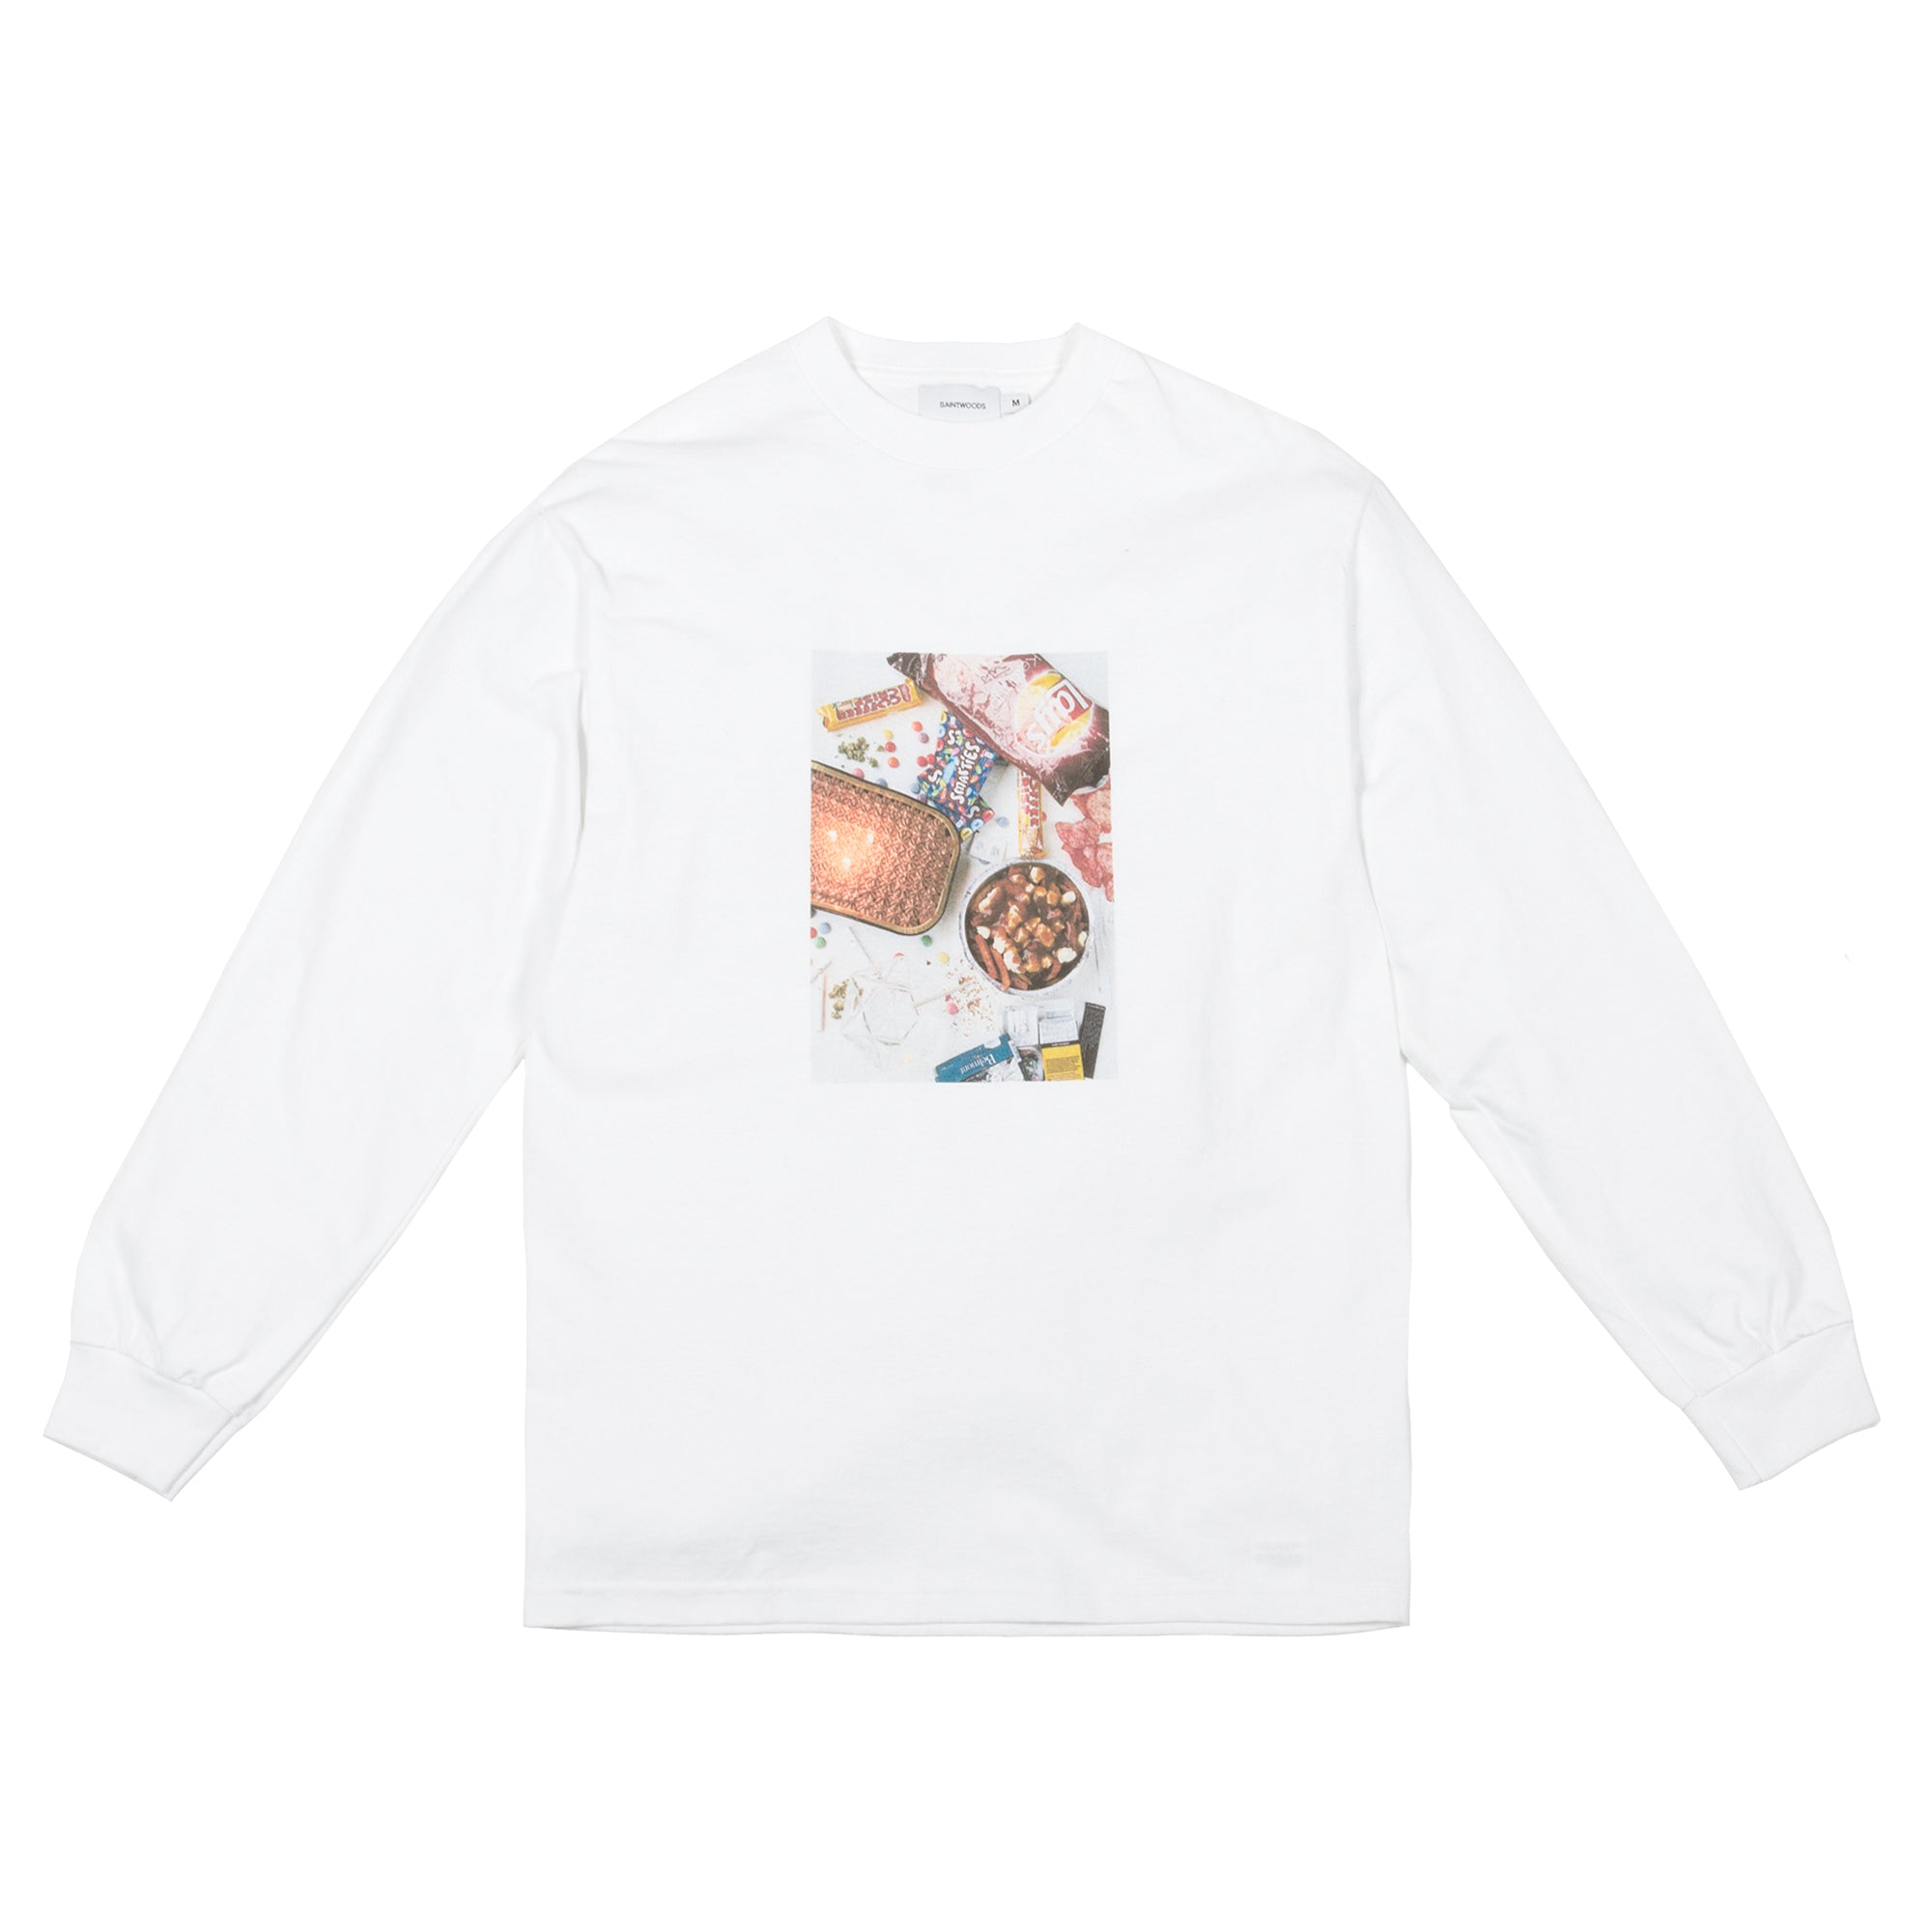 Only in Canada Tee - Long Sleeves - Saintwoods